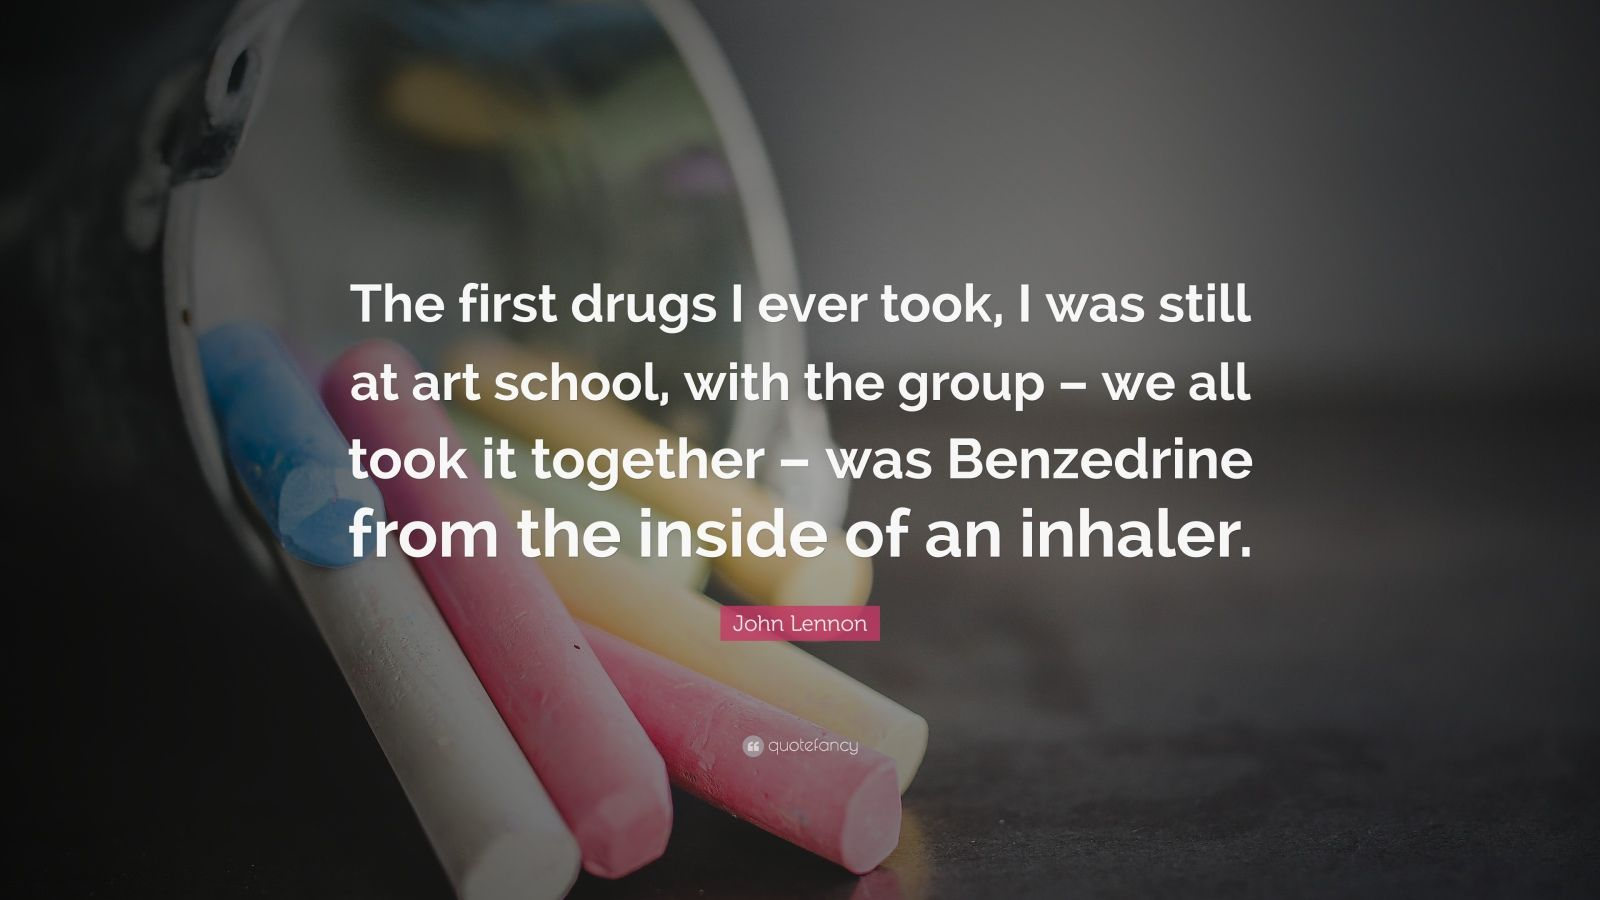 """John Lennon Quote: """"The first drugs I ever took, I was still at art school, with the group – we all took it together – was Benzedrine from the inside of an inhaler."""""""